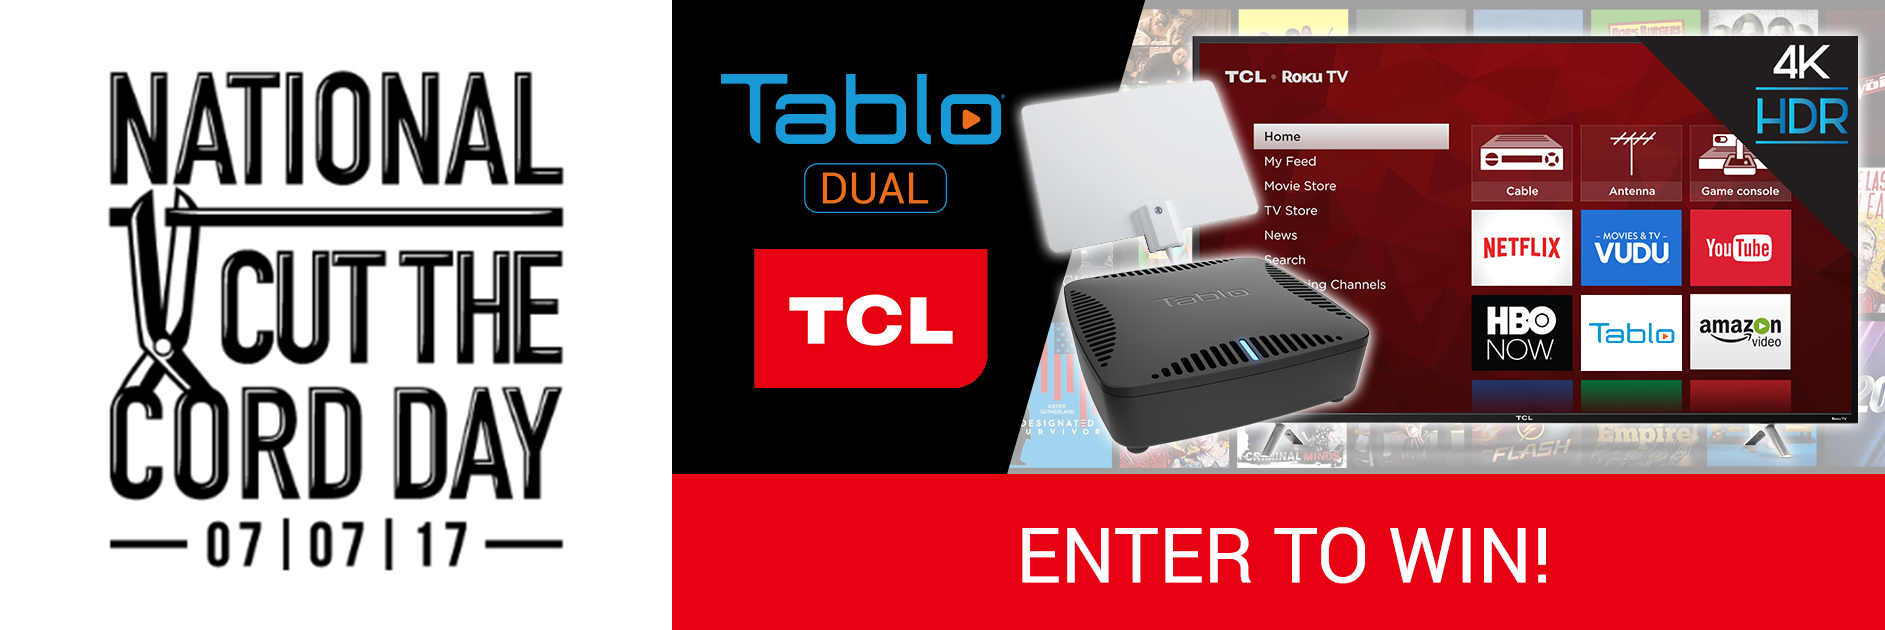 TCL Tablo giveaway